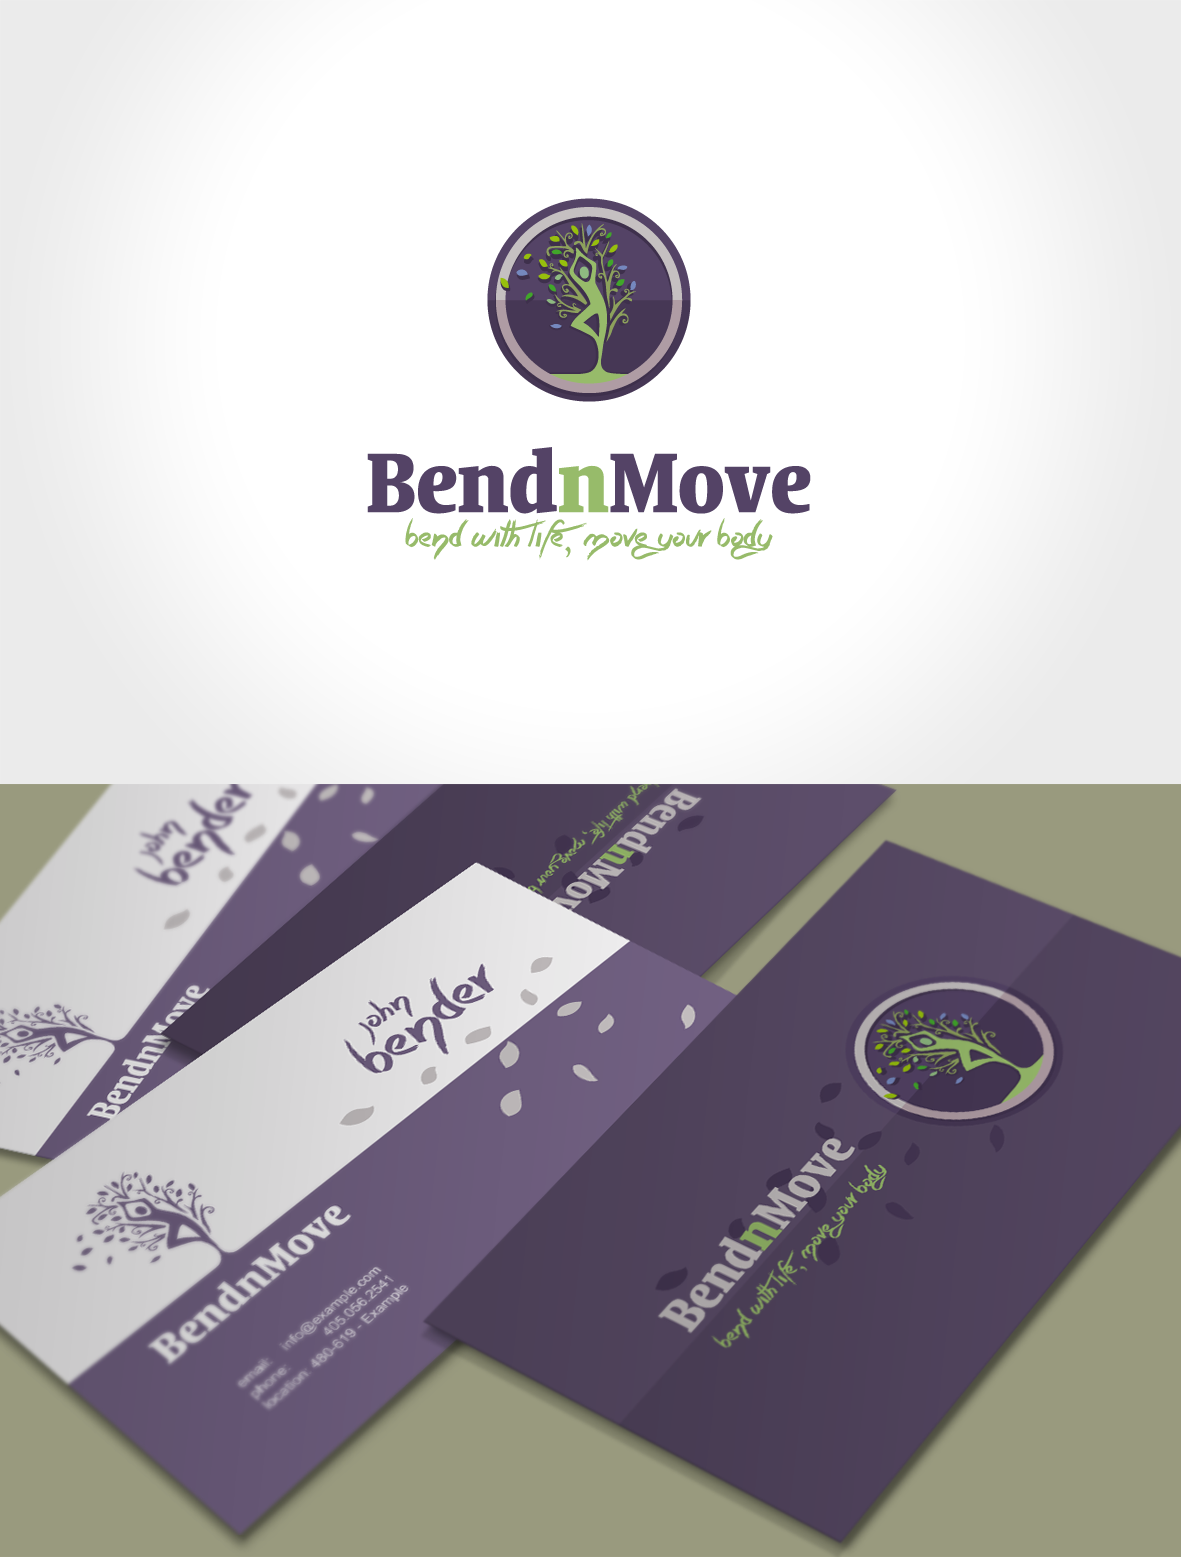 New logo wanted for BendnMove